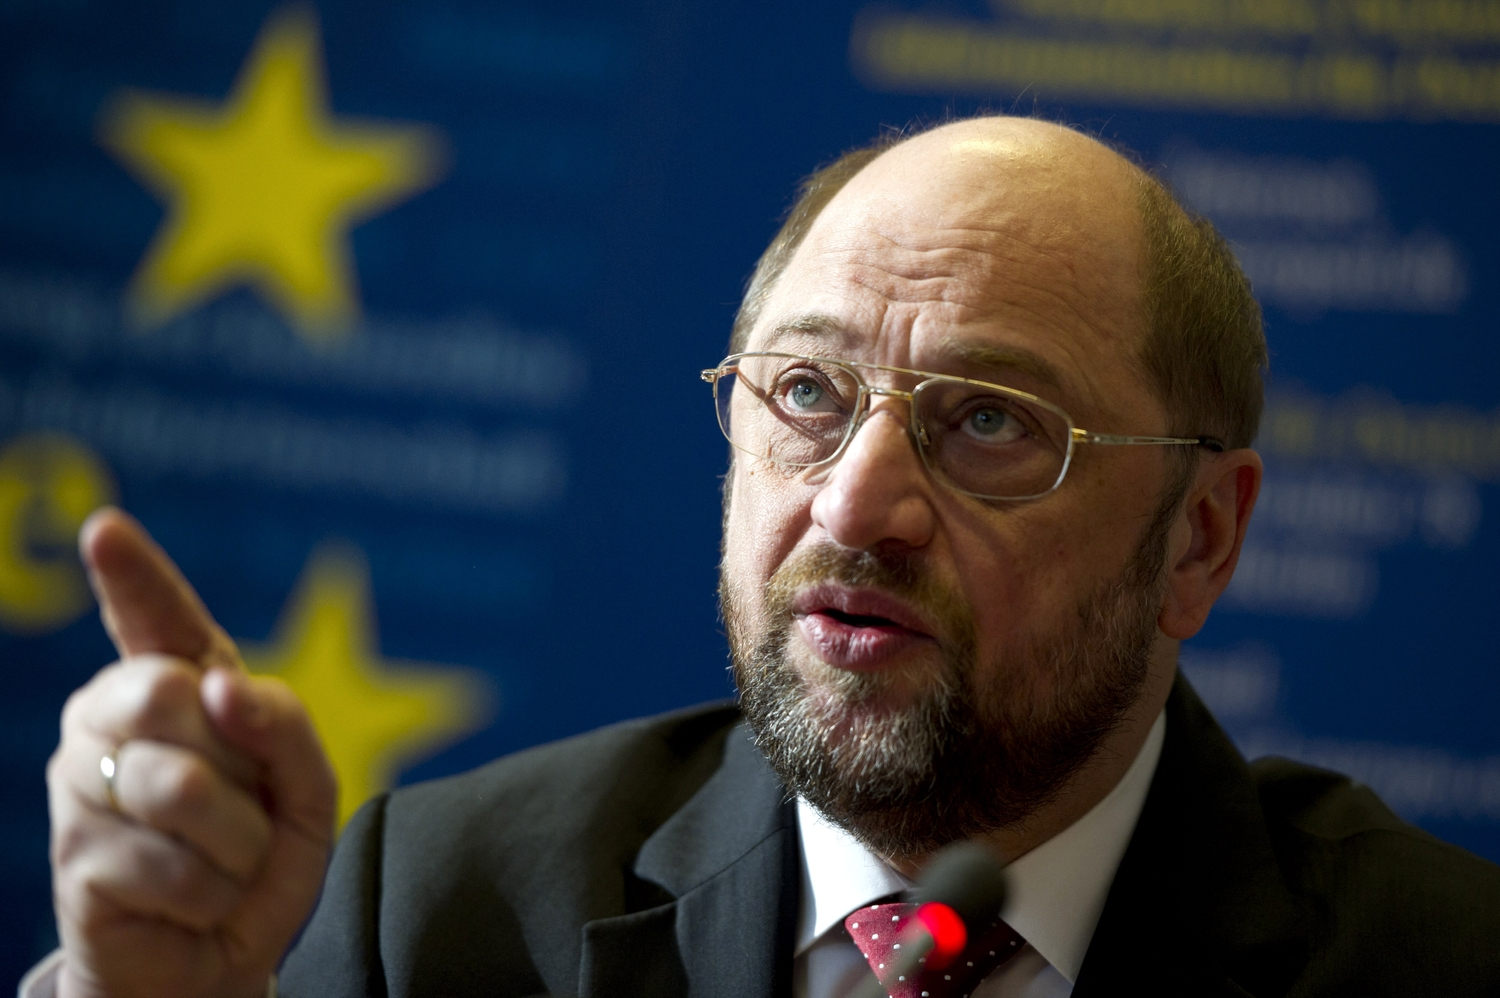 Head of the EU Parliament says Cyprus in need of new investments